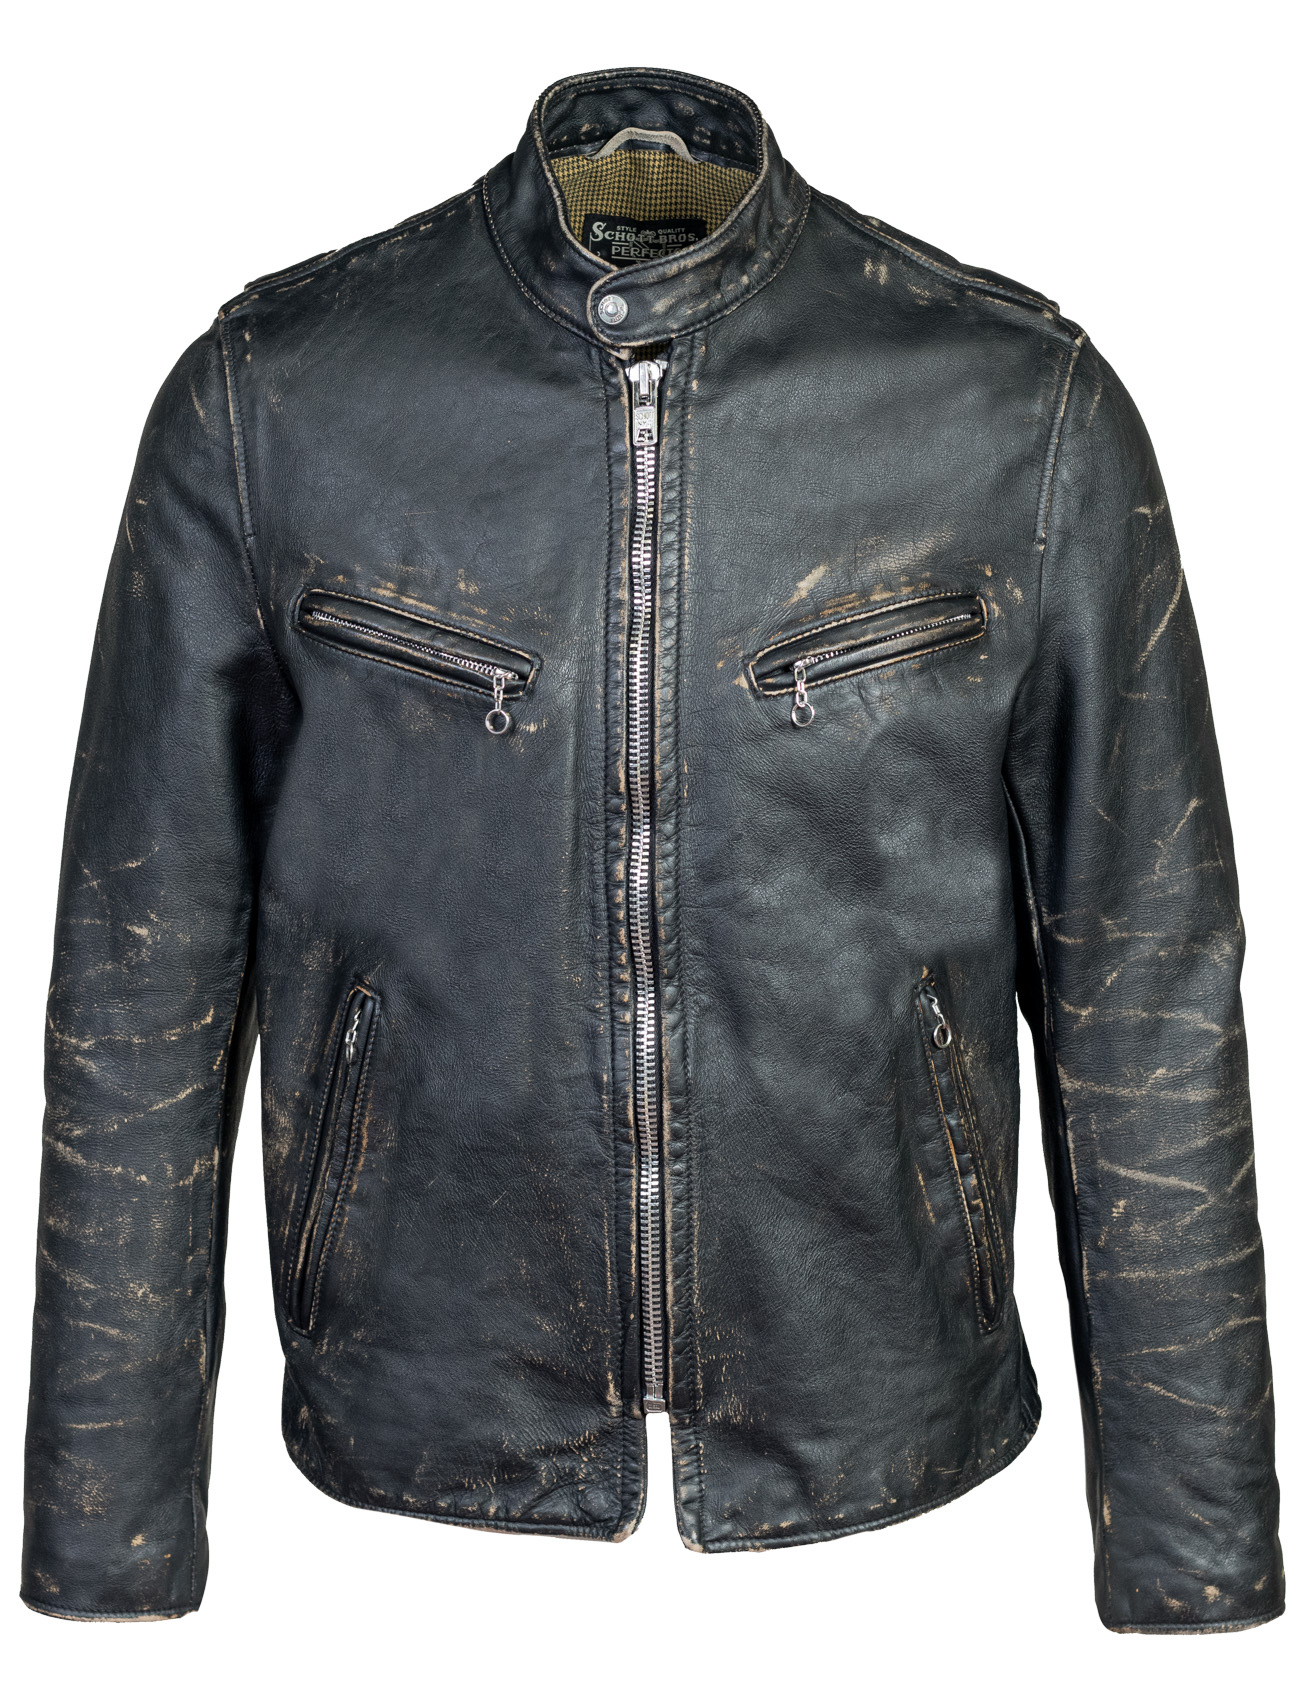 Perfecto® Brand PER41 Hand Vintaged Cowhide Café Racer Jacket